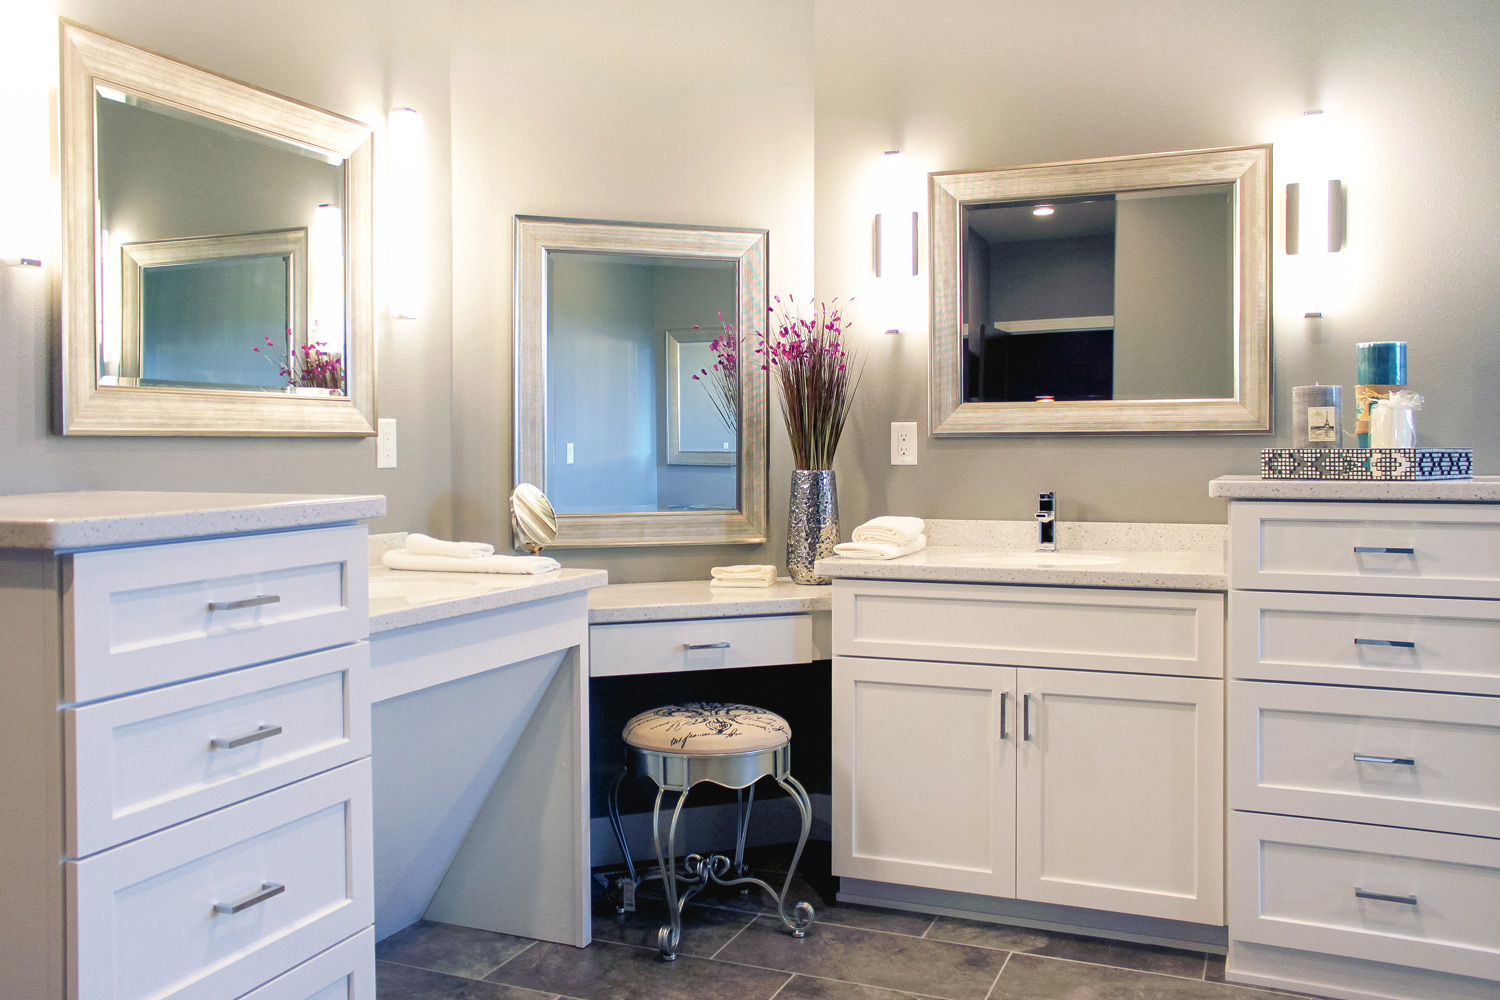 Master bath with his and her vanities